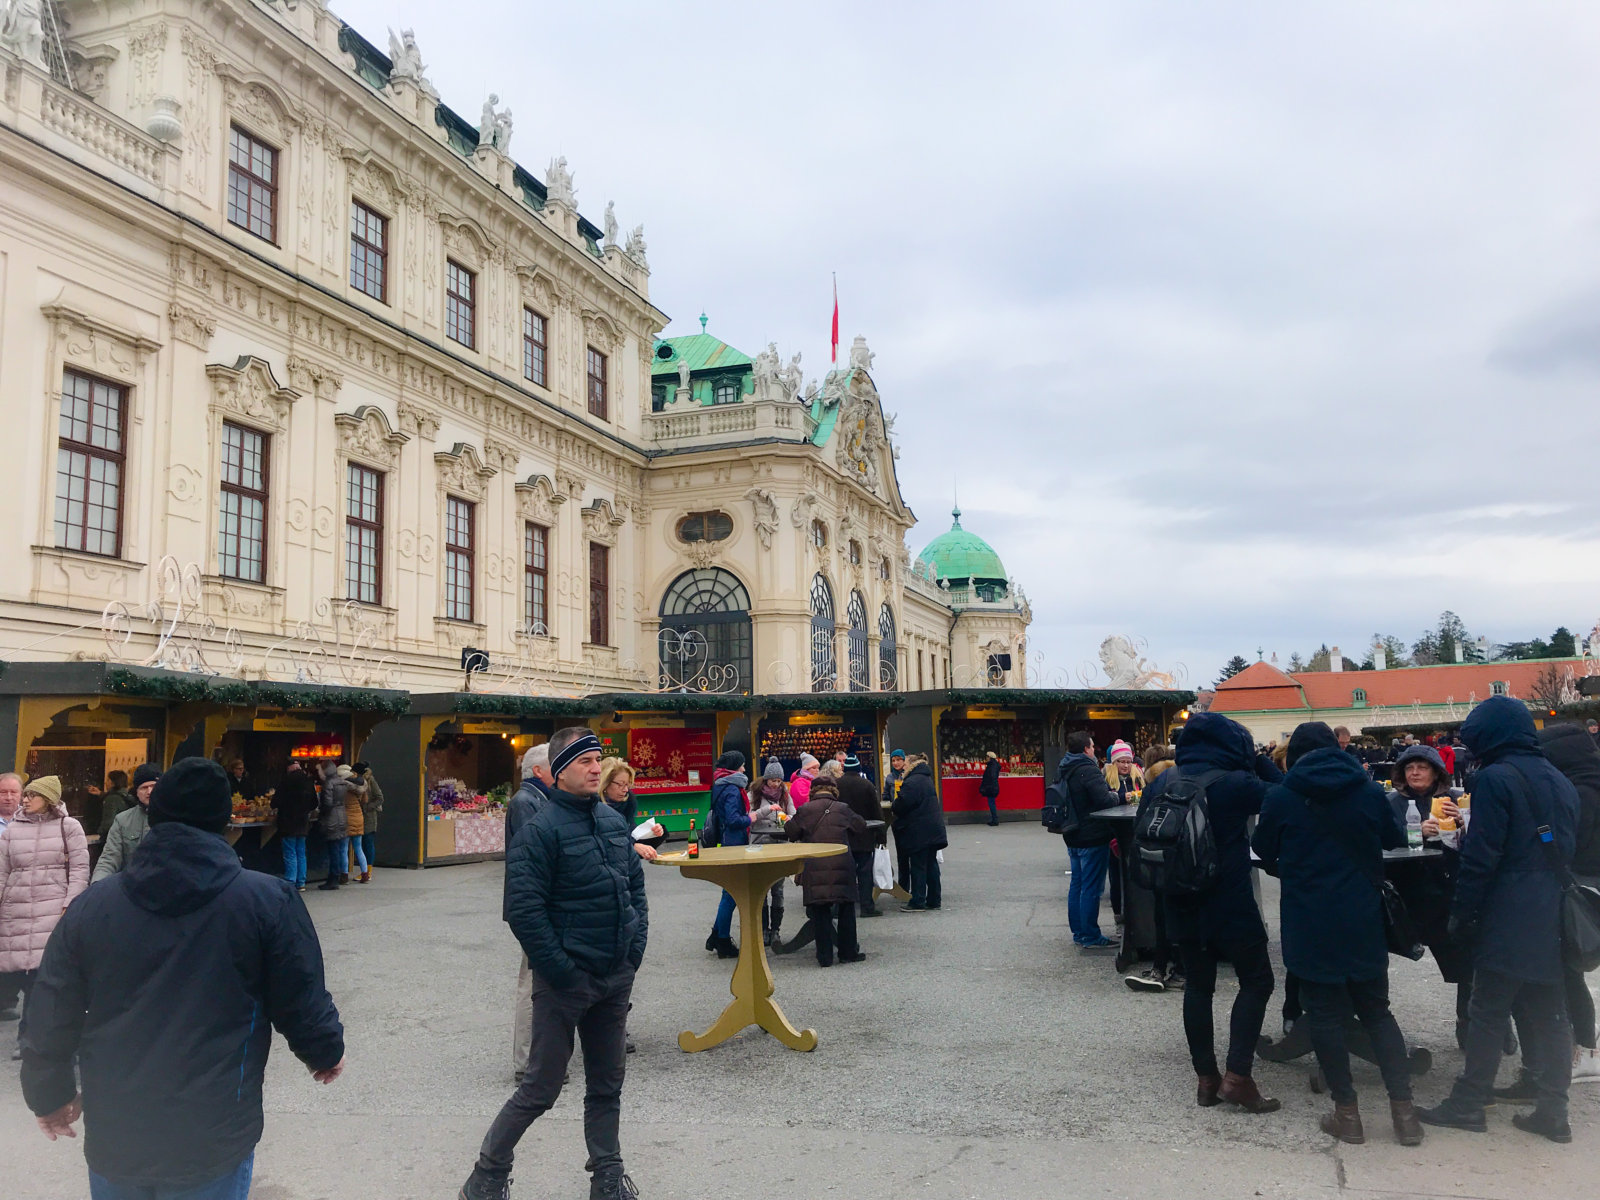 Vienna in winter